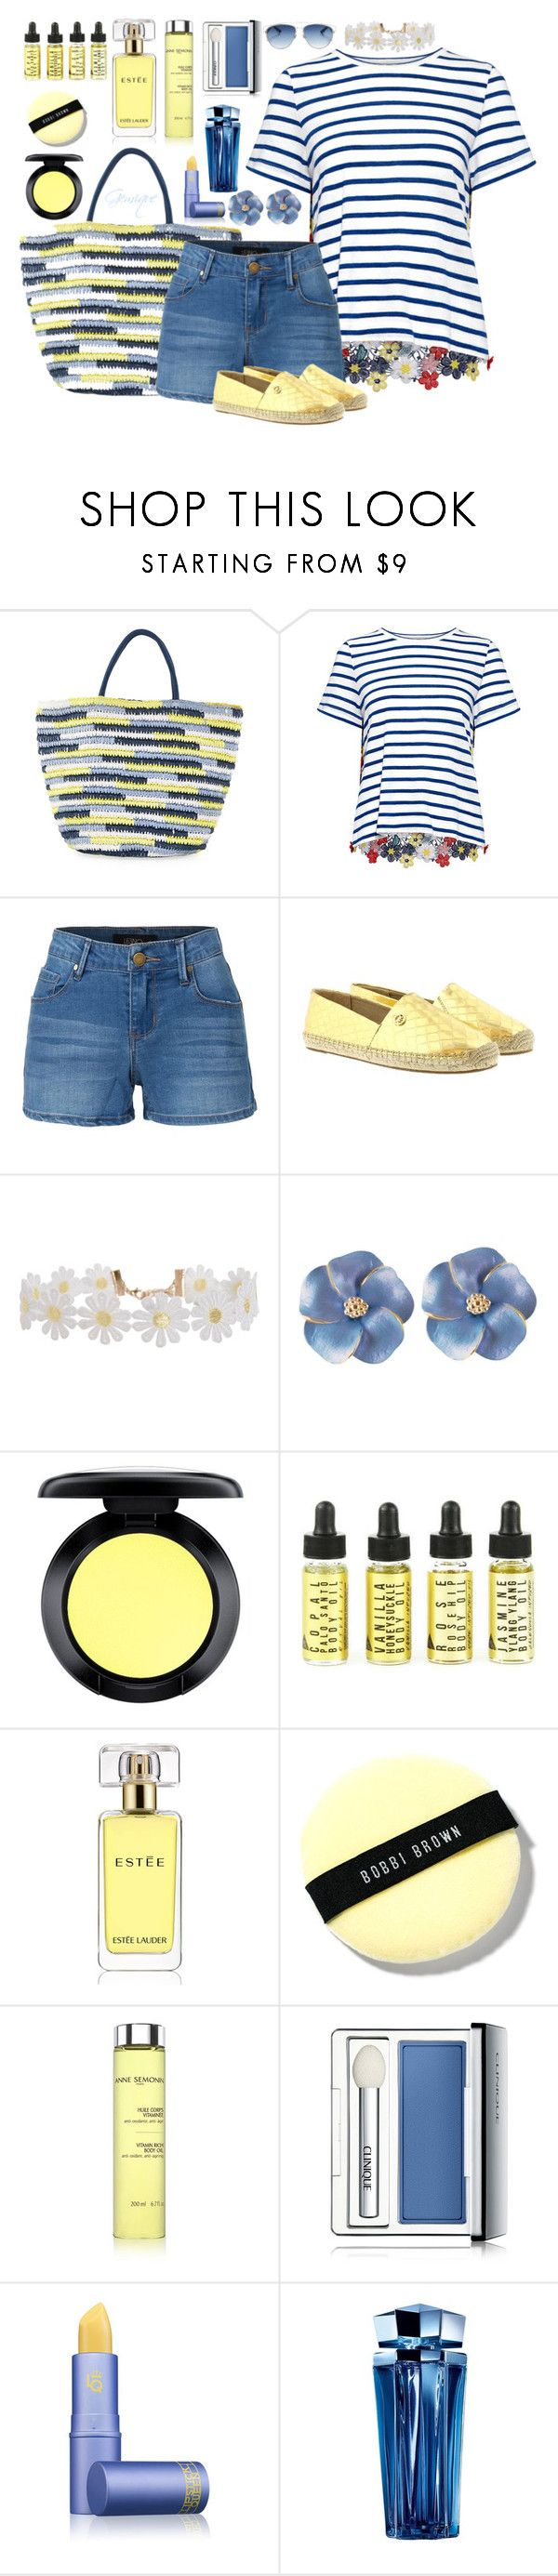 """""""Summer, Here I Come"""" by gemique ❤ liked on Polyvore featuring Neiman Marcus, Sea, New York, LE3NO, Michael Kors, Humble Chic, MAC Cosmetics, Estée Lauder, Bobbi Brown Cosmetics, Anne Semonin and Clinique"""